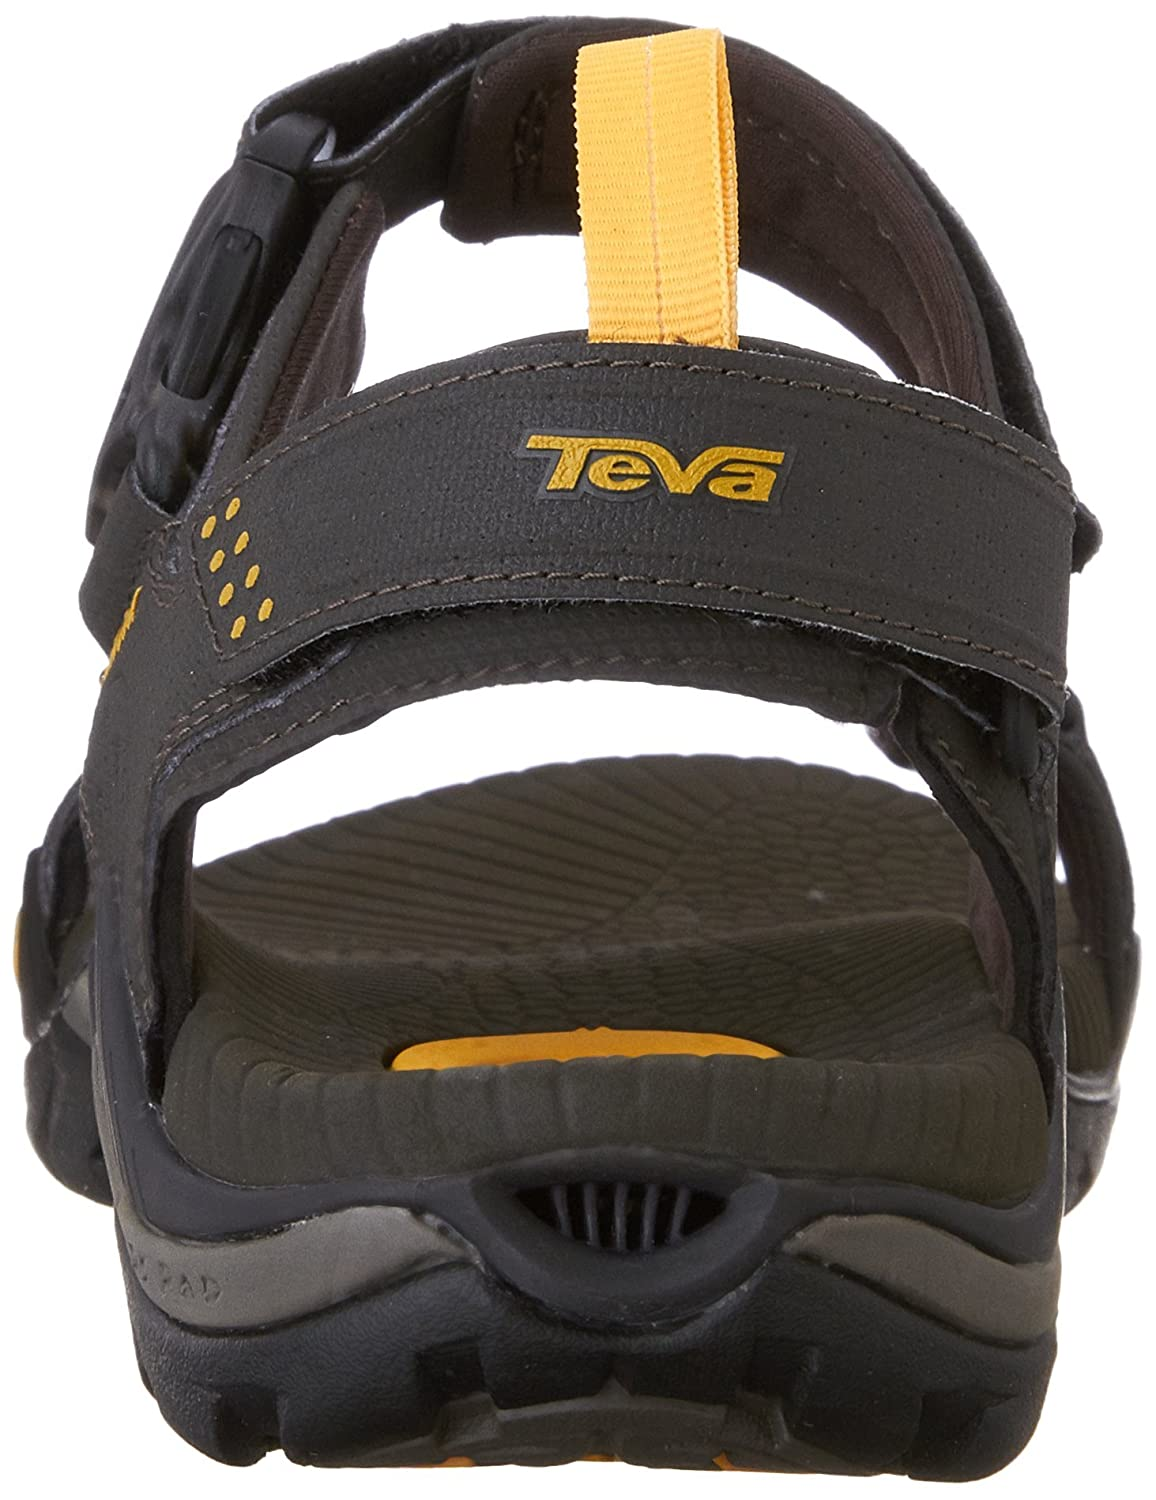 76ada4ce3 Teva Toachi Men s Sandal  Amazon.co.uk  Shoes   Bags